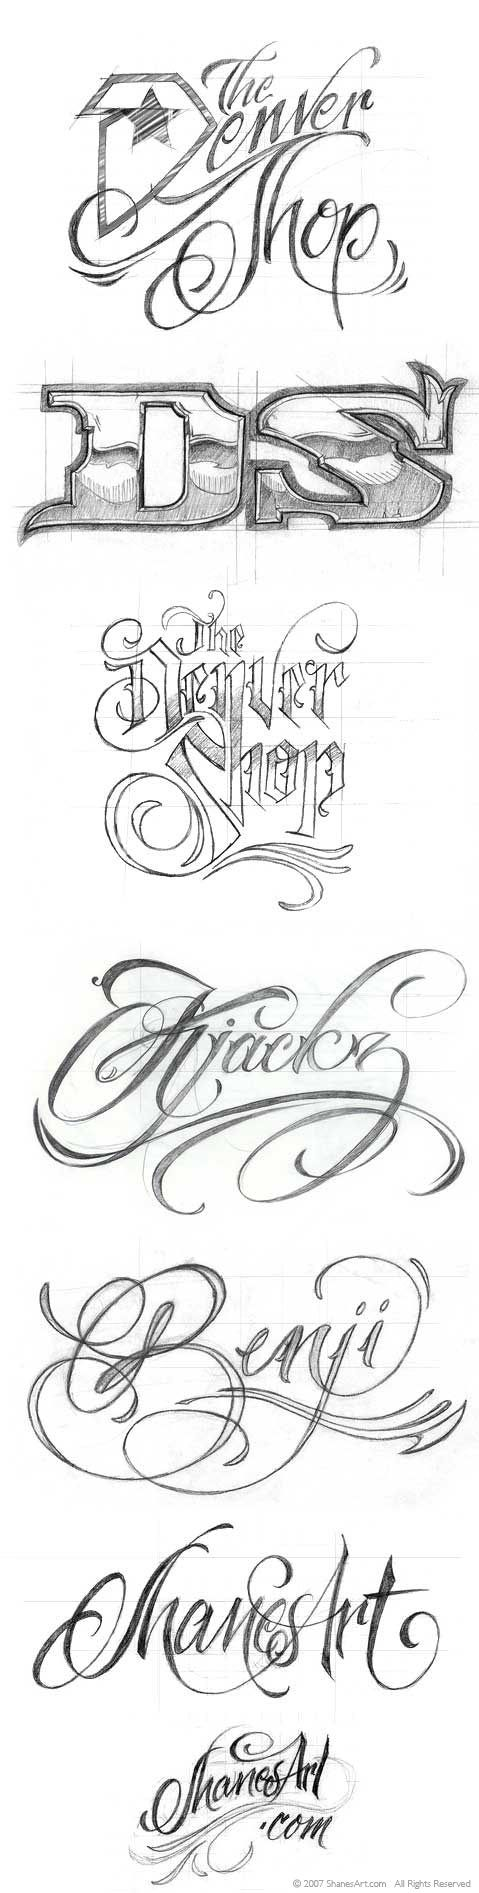 Tattoo Lettering | tattoo lettering fonts.type treatments shanesart blog clvl7hks Type ...